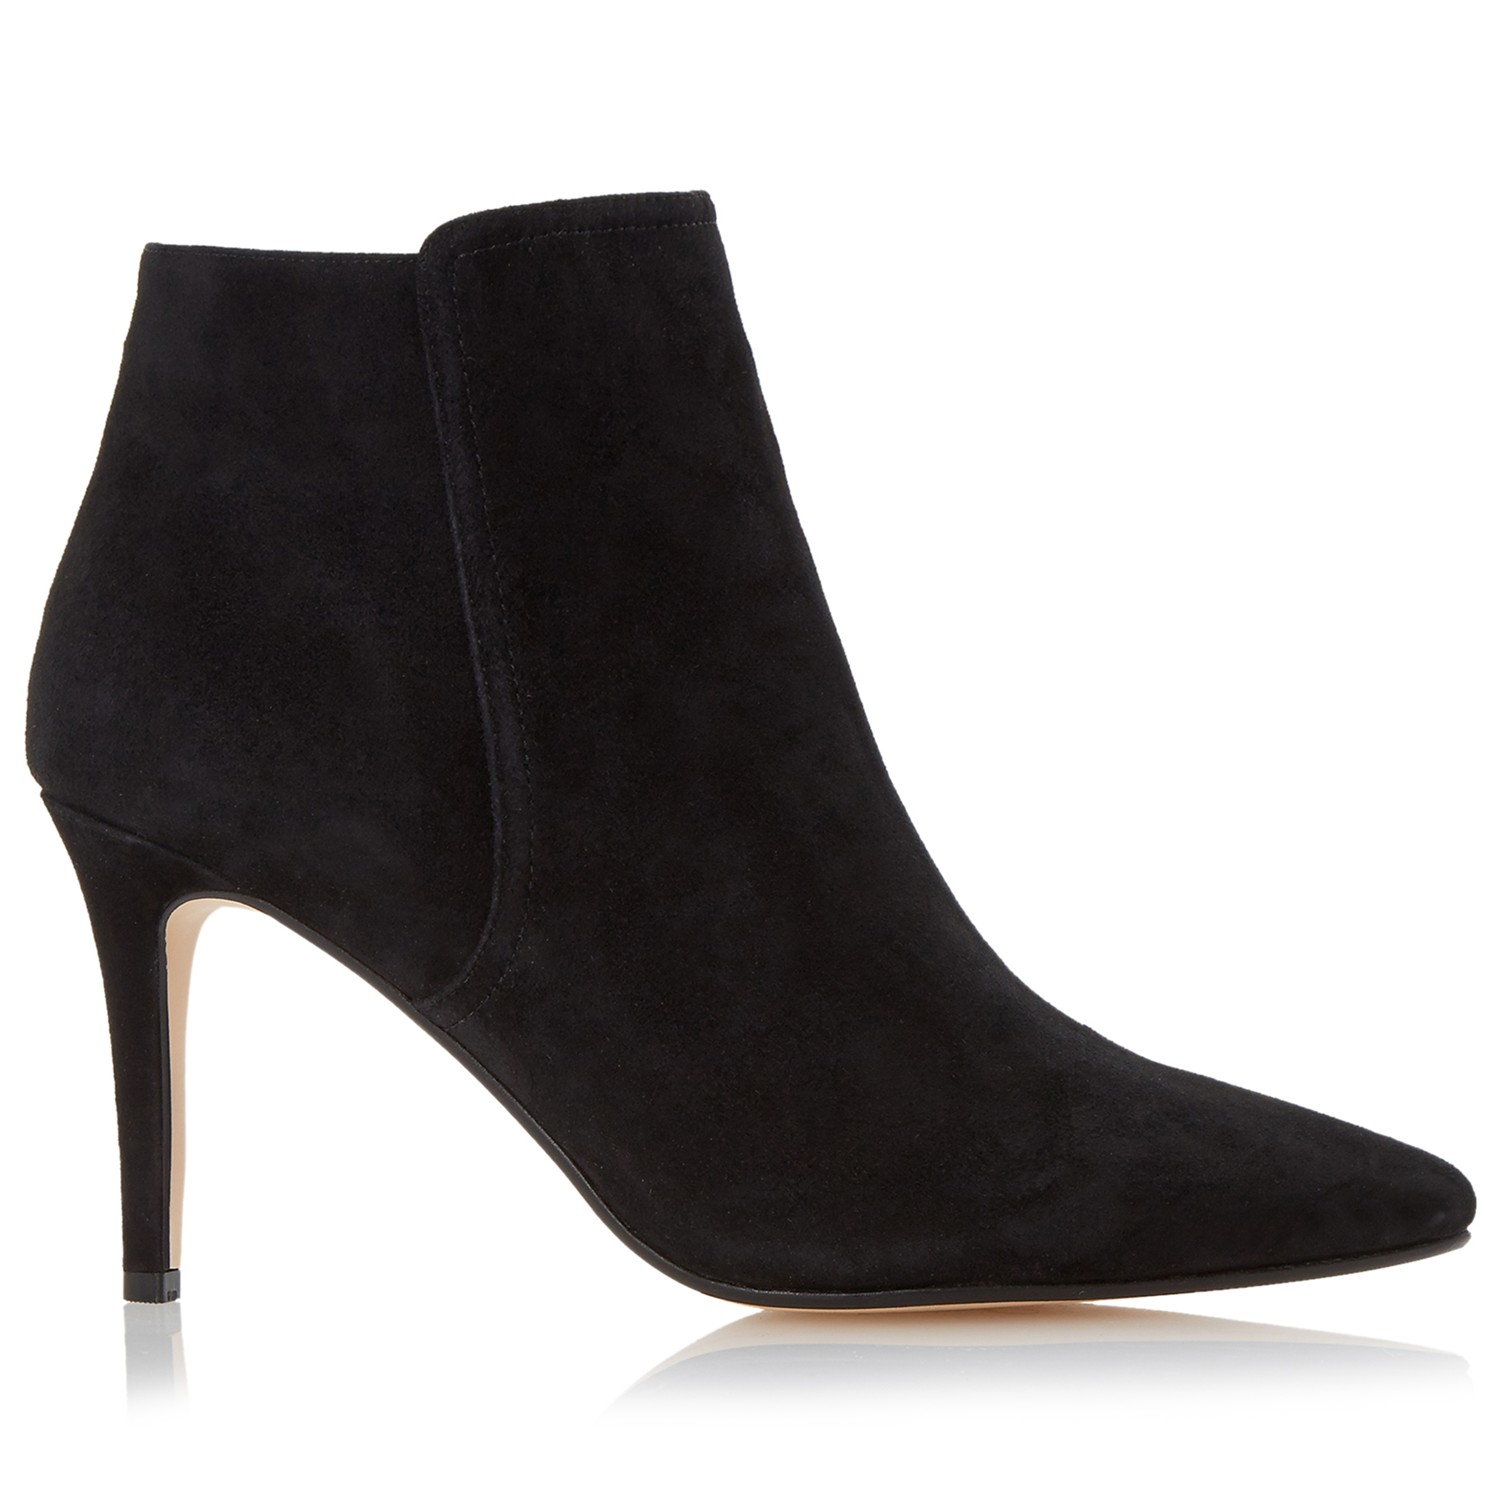 dune orlando suede stiletto ankle boots in black lyst